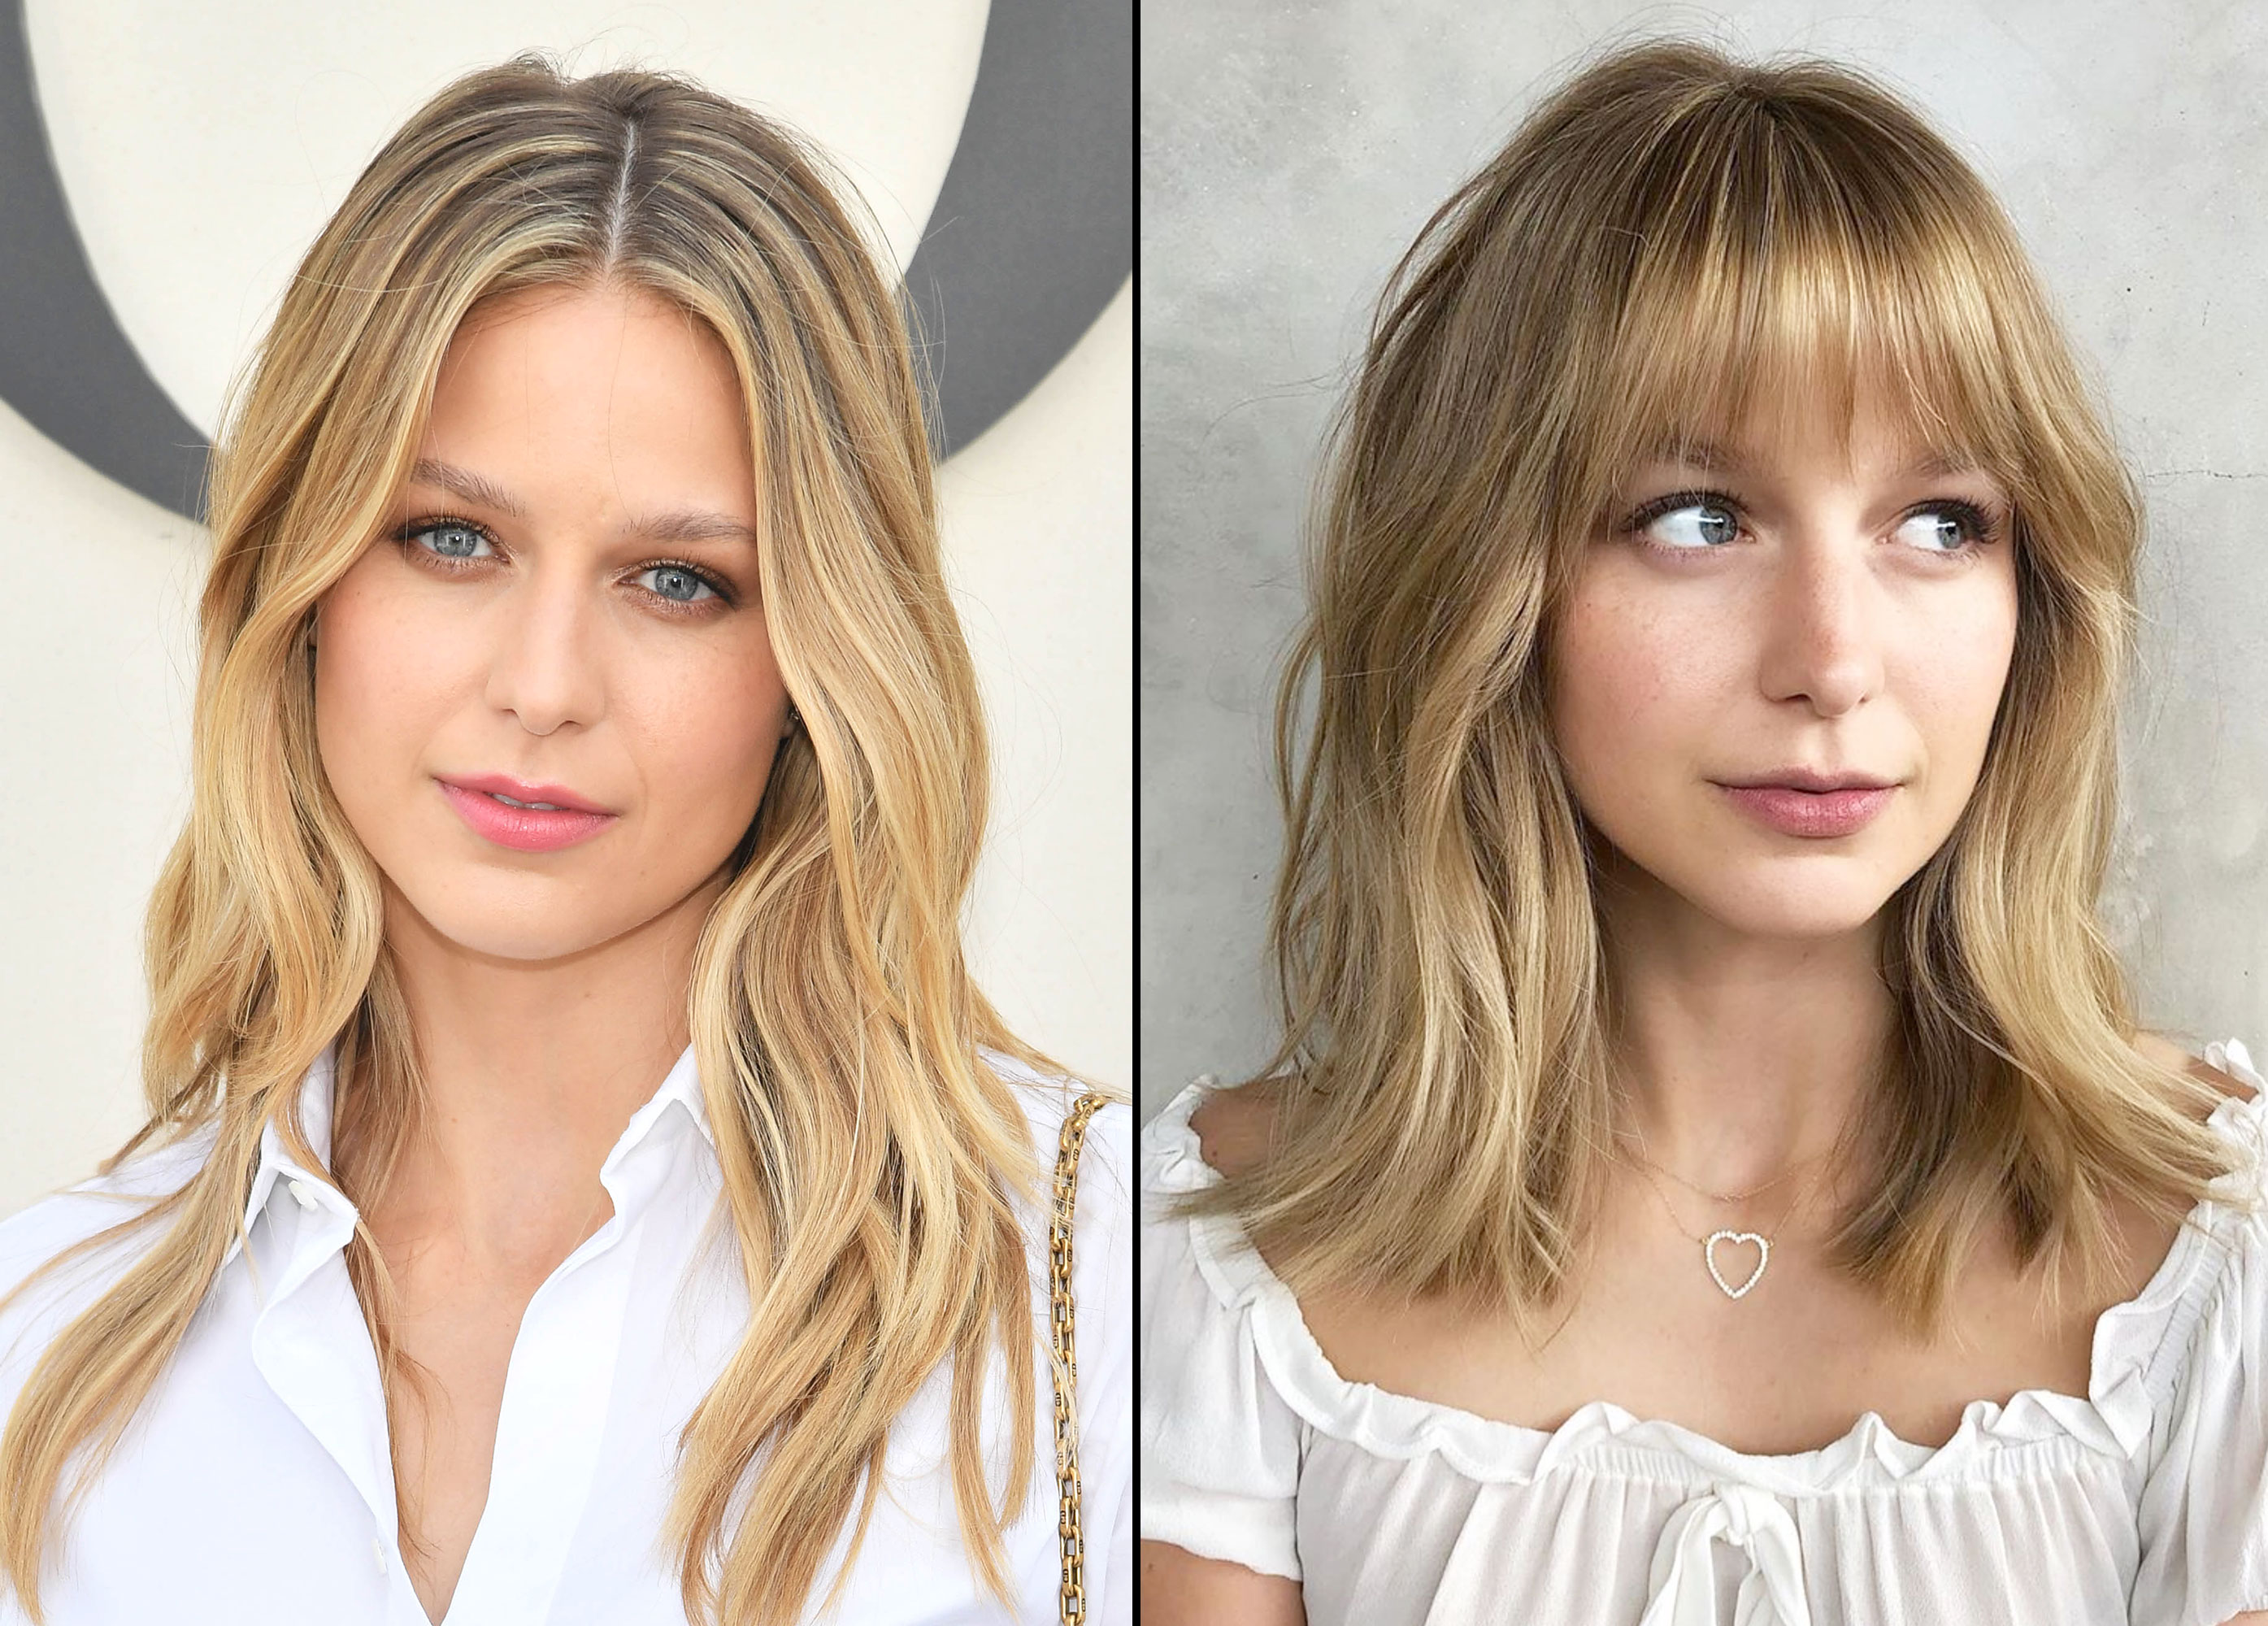 Melissa Benoist Celebrity Hair Transformation - In an Instagram post on May 14, 2019, the Supergirl star debuted fresh fringe with some natural sun-kissed highlights courtesy of Riawna Capri.